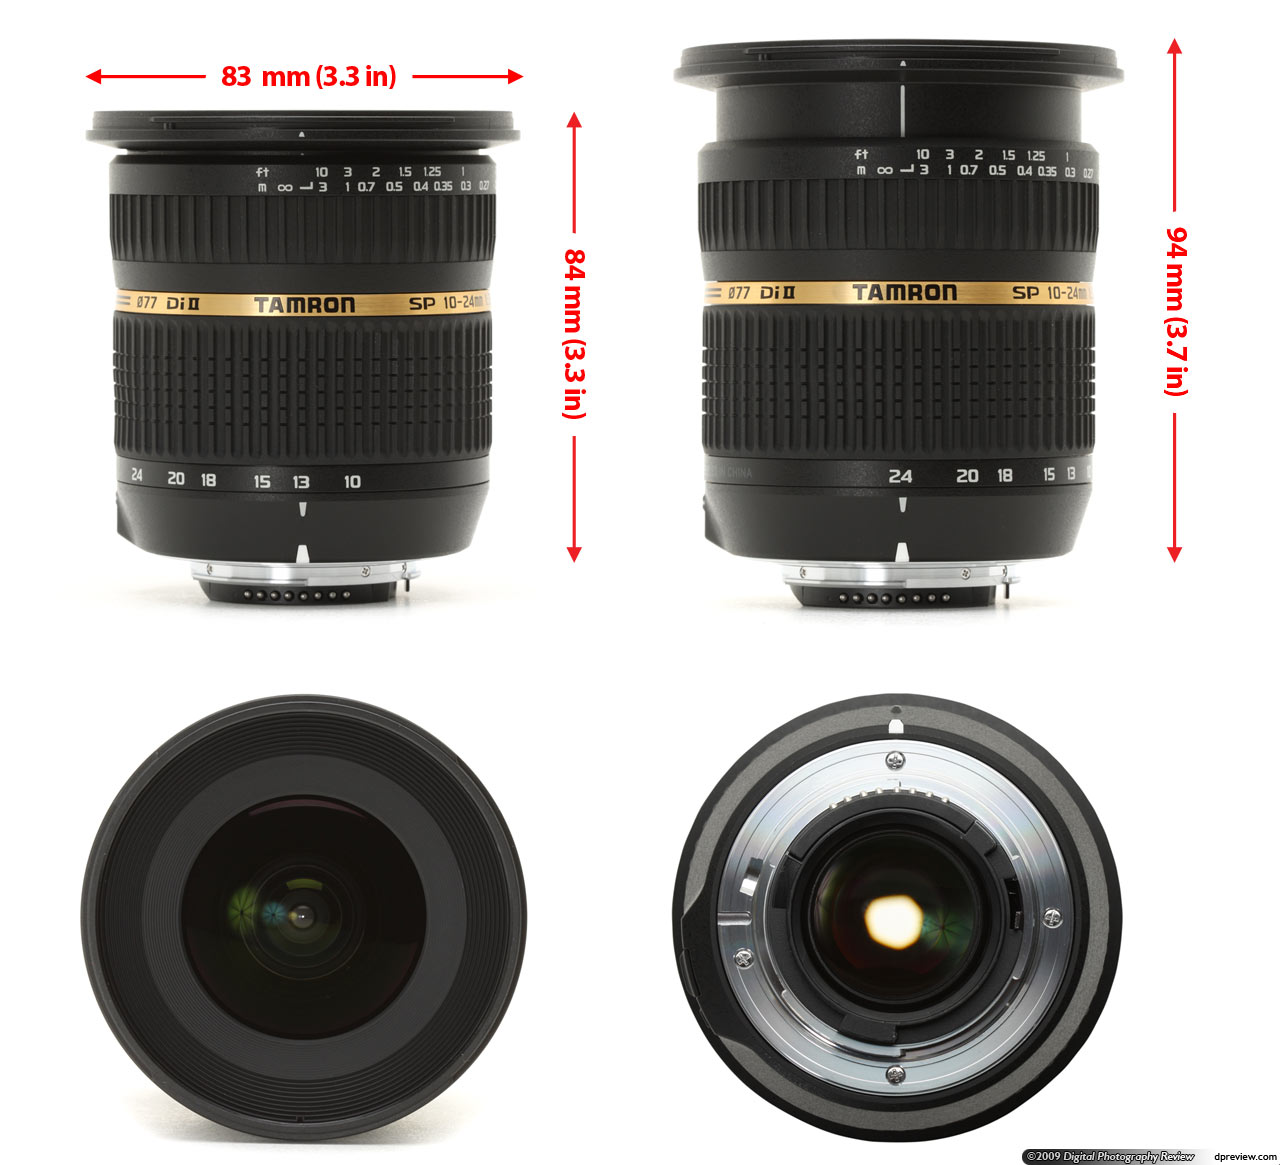 Tamron SP AF 10-24mm F3.5-4.5 Di II LD Aspherical (IF) review ...